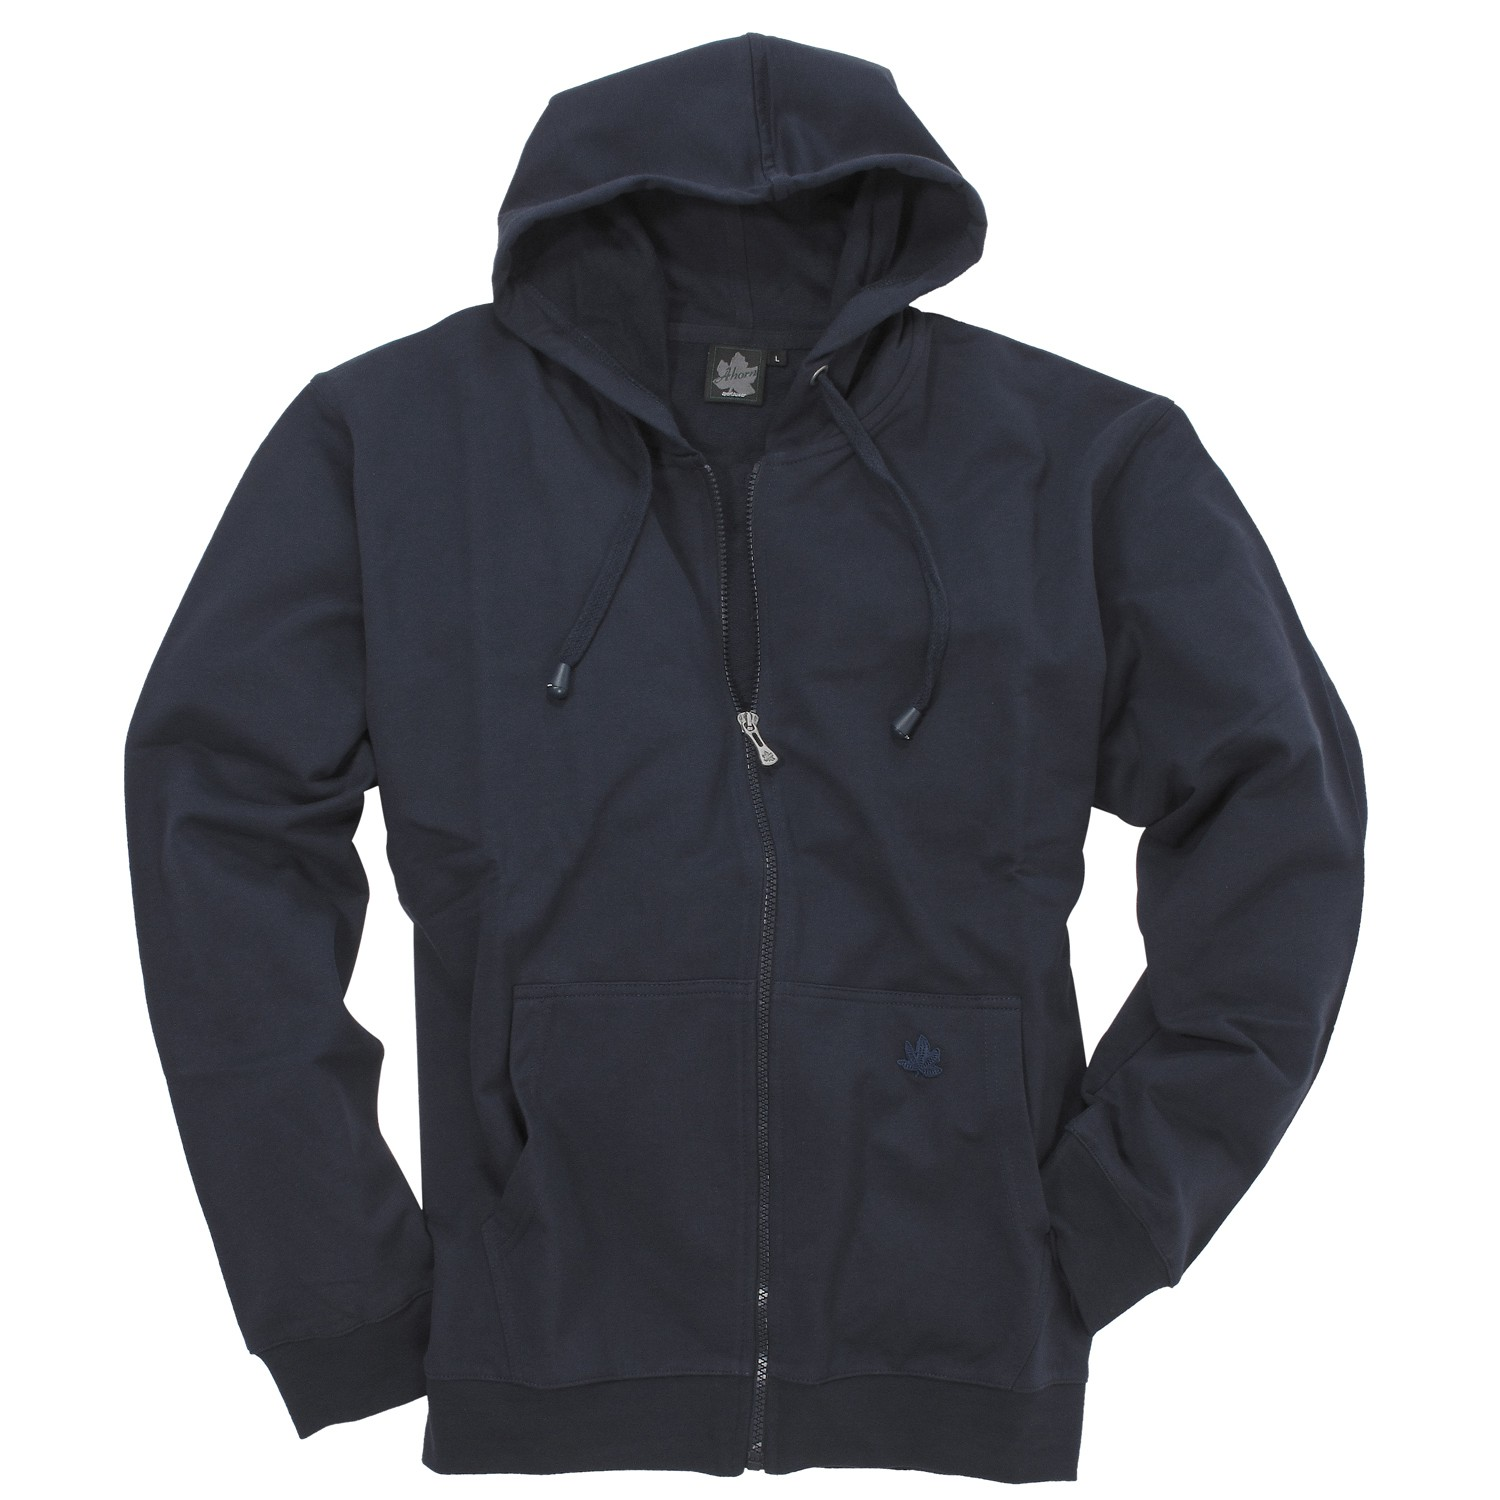 Detail Image to Hooded sweat jacket in dark blue by Ahorn Sportswear up to oversize 10XL